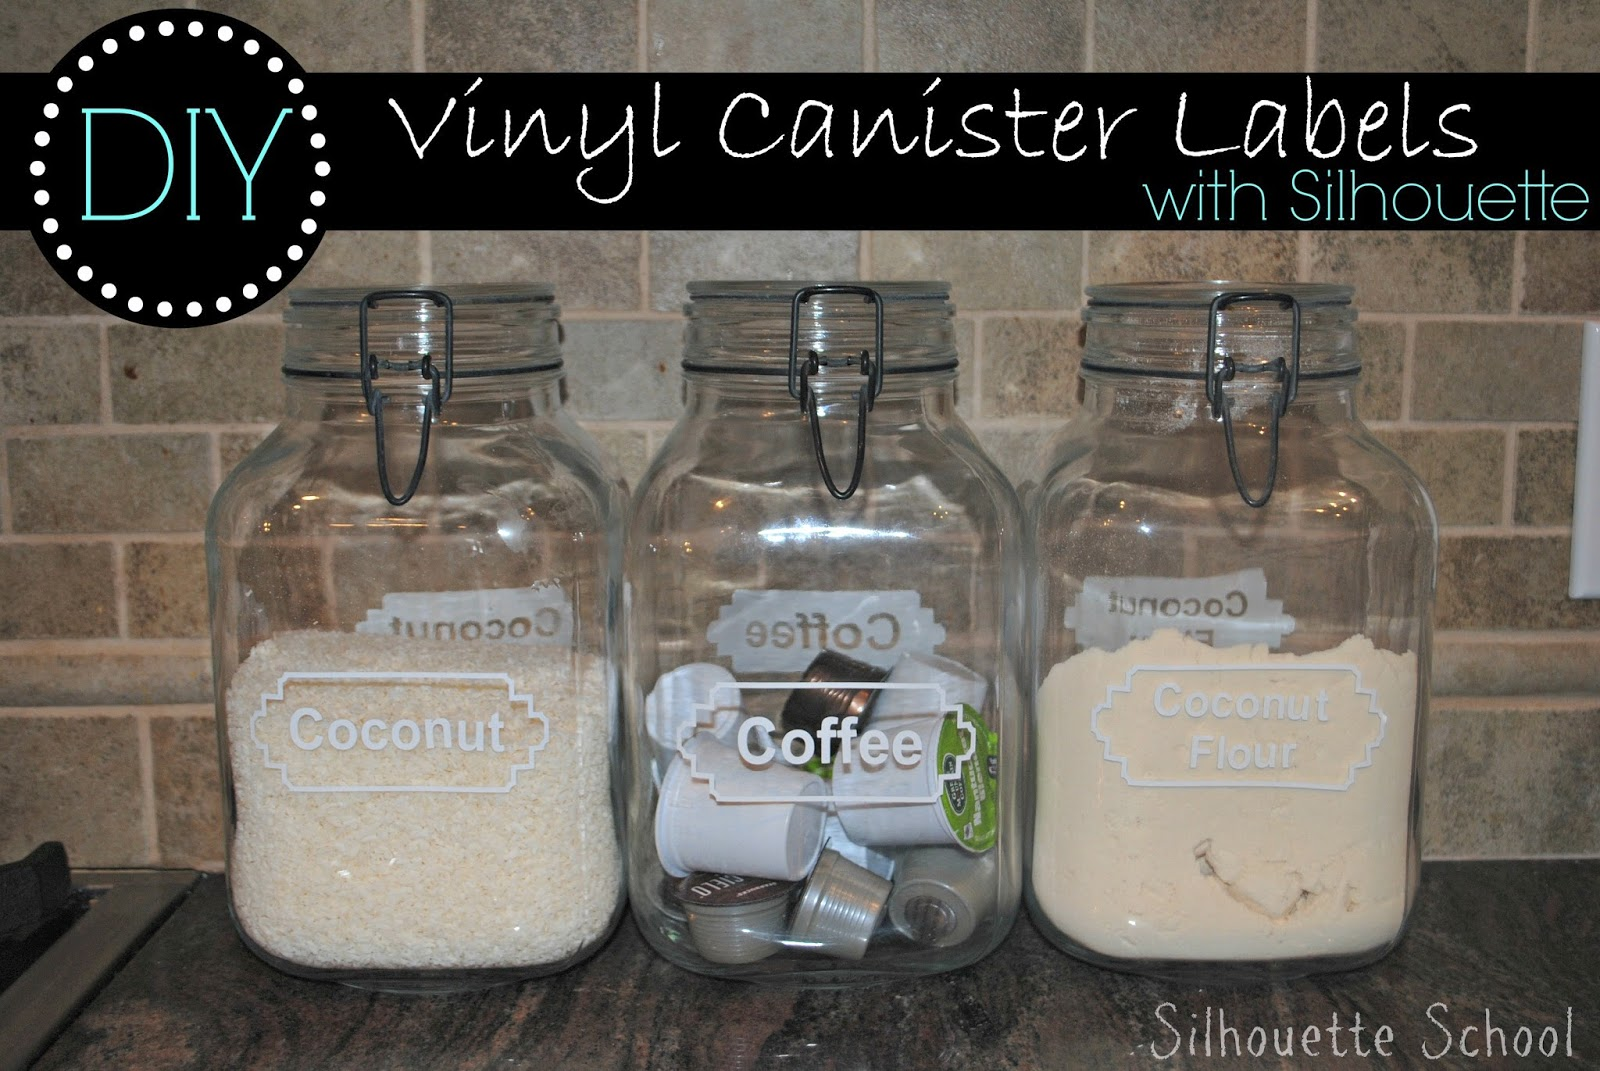 Kitchen canister labels, DIY, do it yourself, free, Silhouette Studio, file